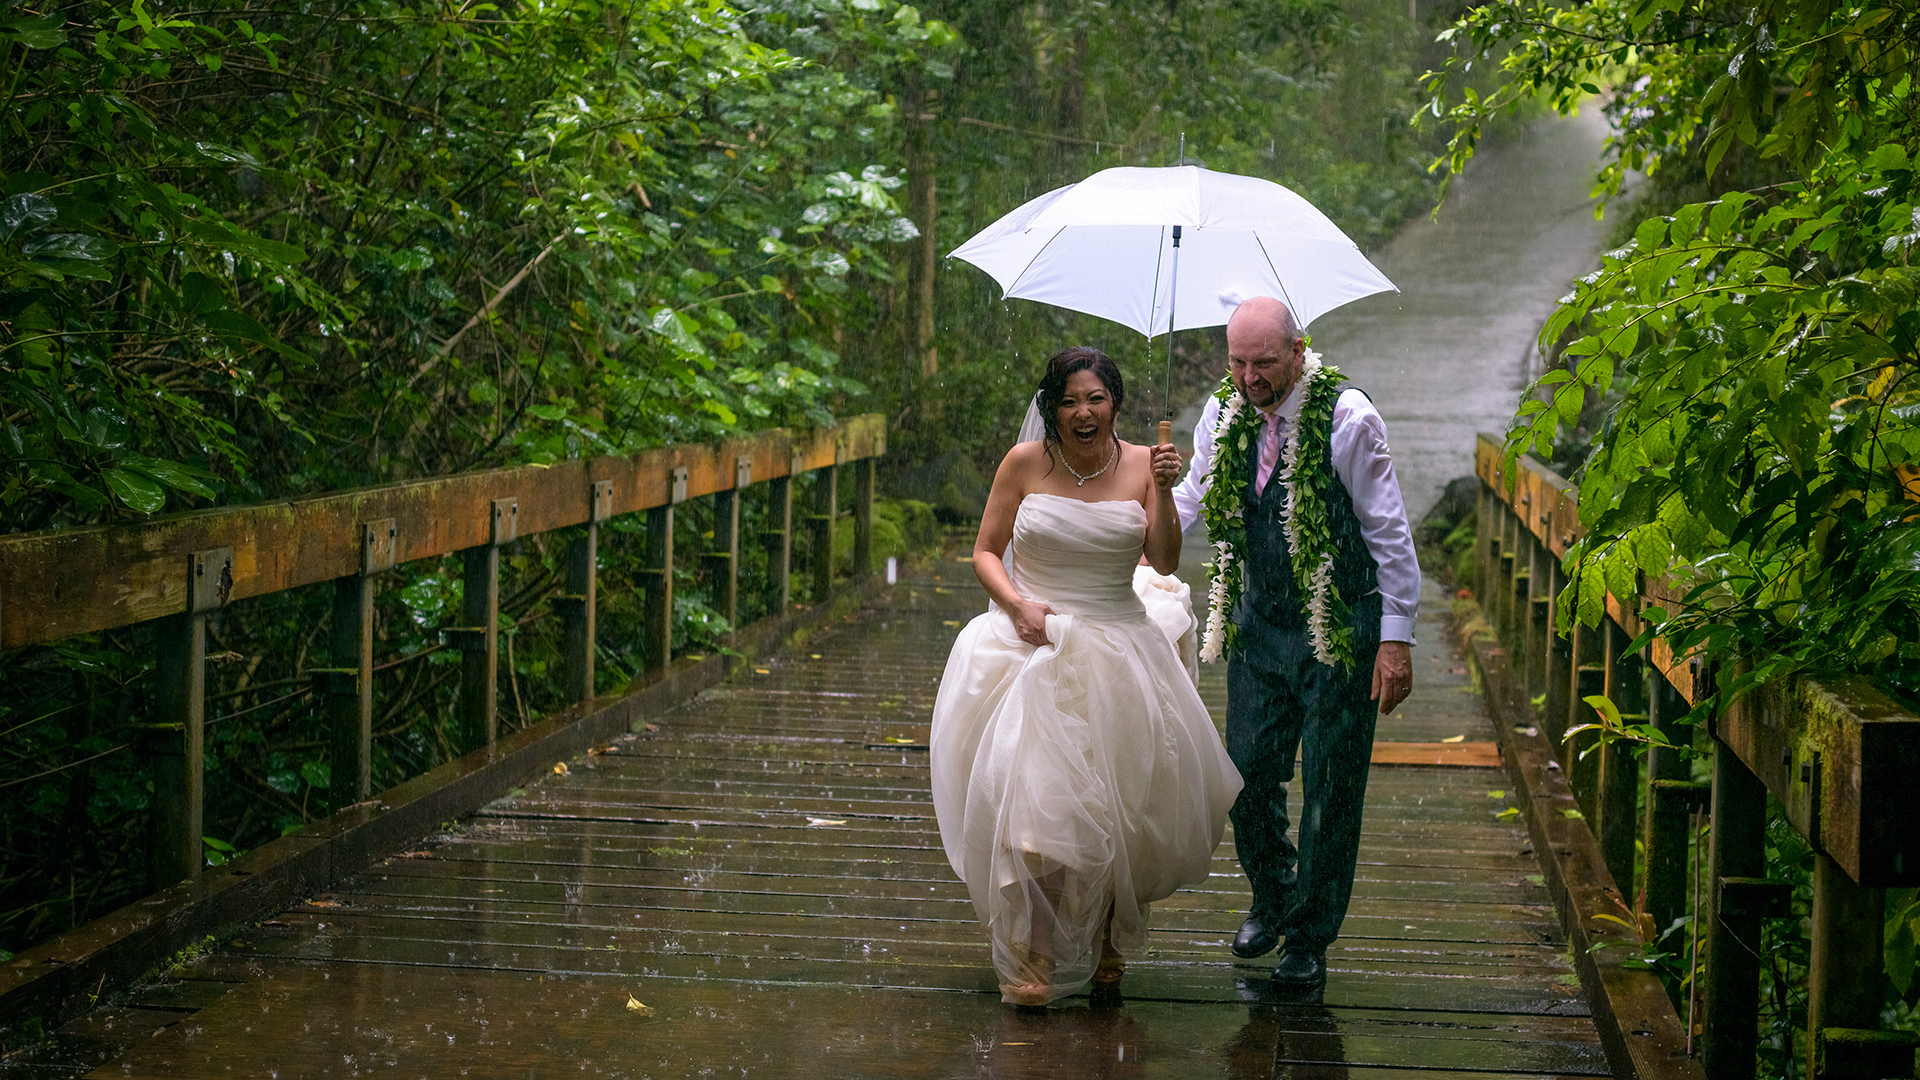 The rain didn't spoil their fun during our couple's session at the Koolau ballroom's in Hawaii.